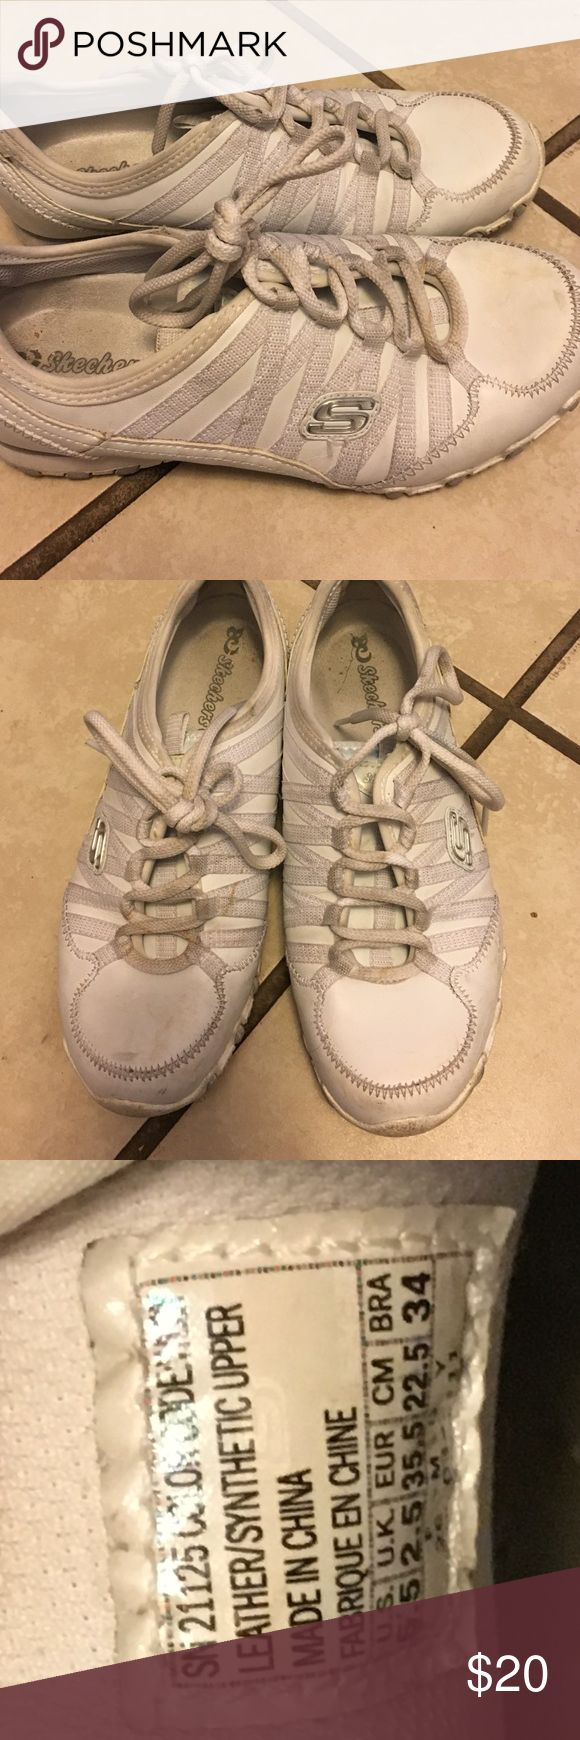 White leather Sketcher sneakers Nice leather walking/casual tennis shoes. Still in excellent condition. My daughter wore about 5-6 times sketchers Shoes Sneakers